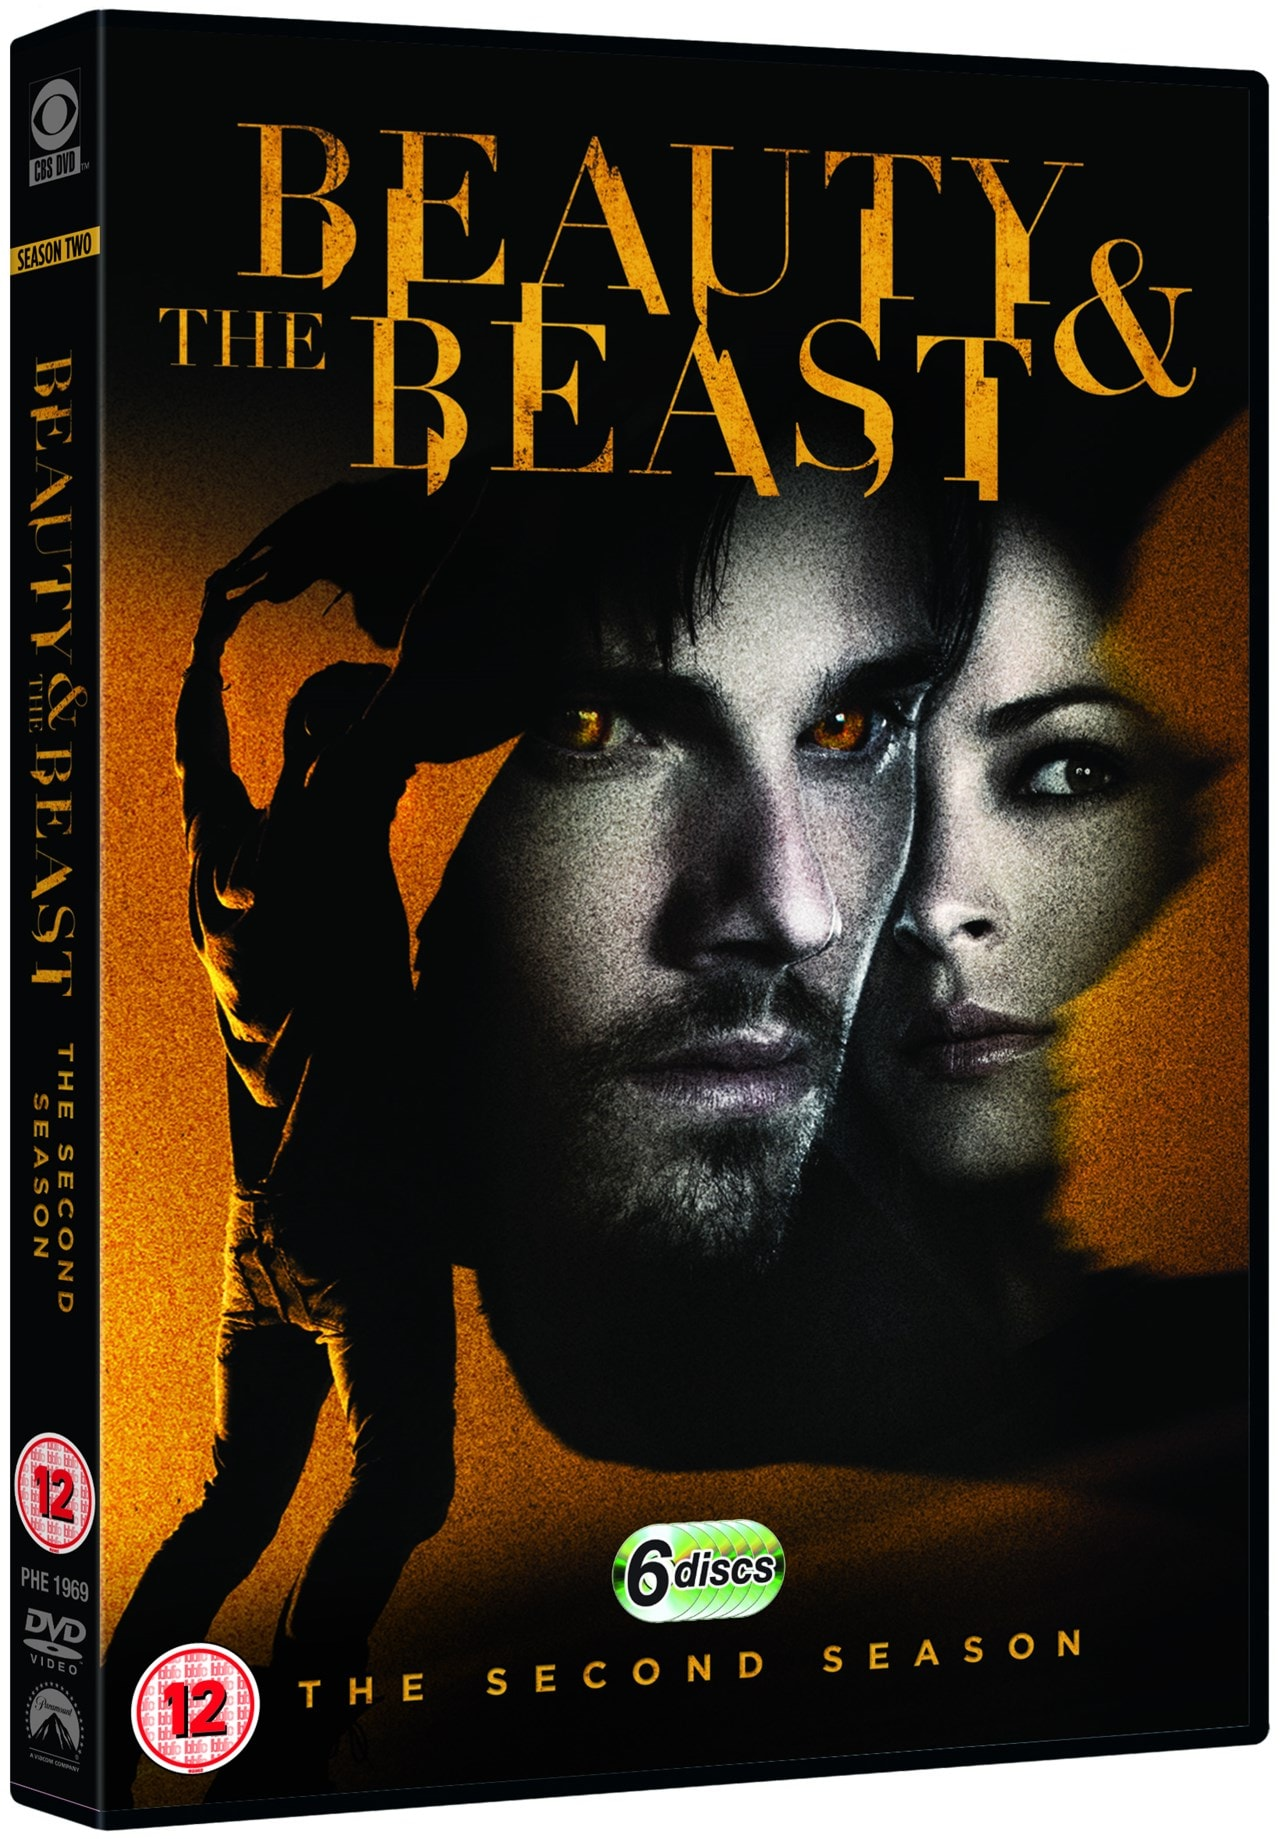 Beauty and the Beast: The Second Season - 2